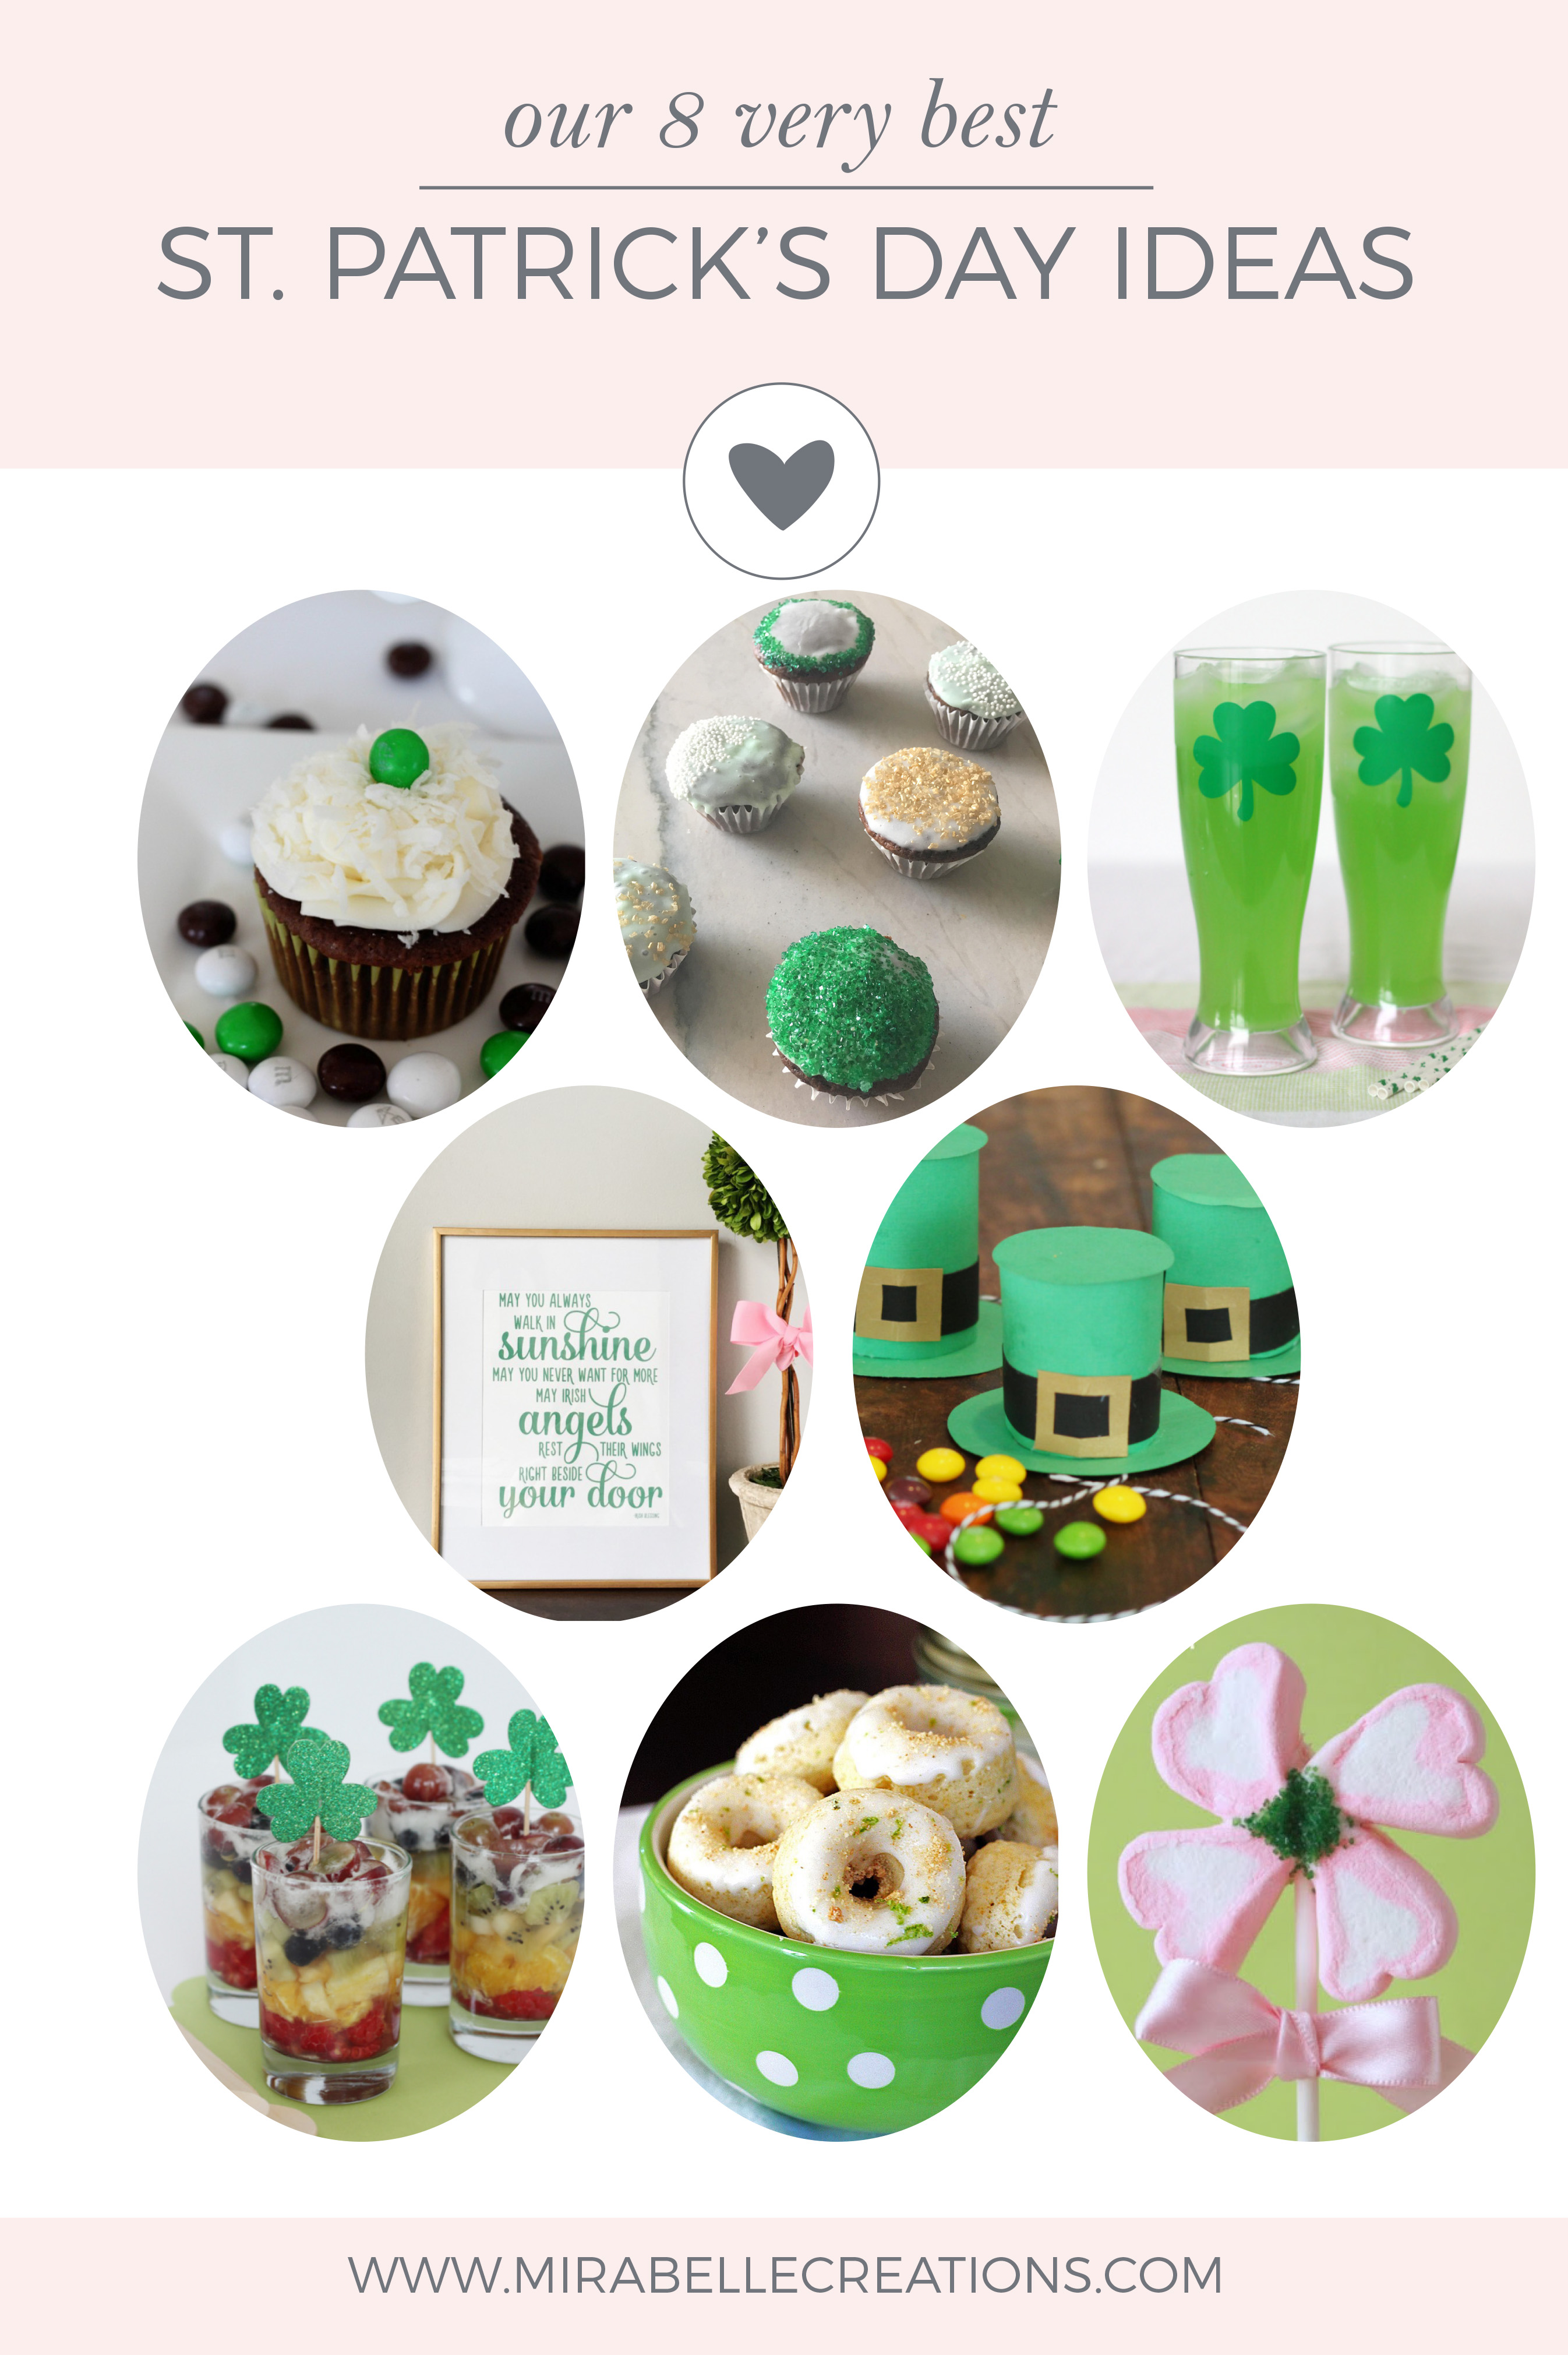 Our 8 Very Best St. Patrick's Day Ideas by Mirabelle Creations (including a free printable)